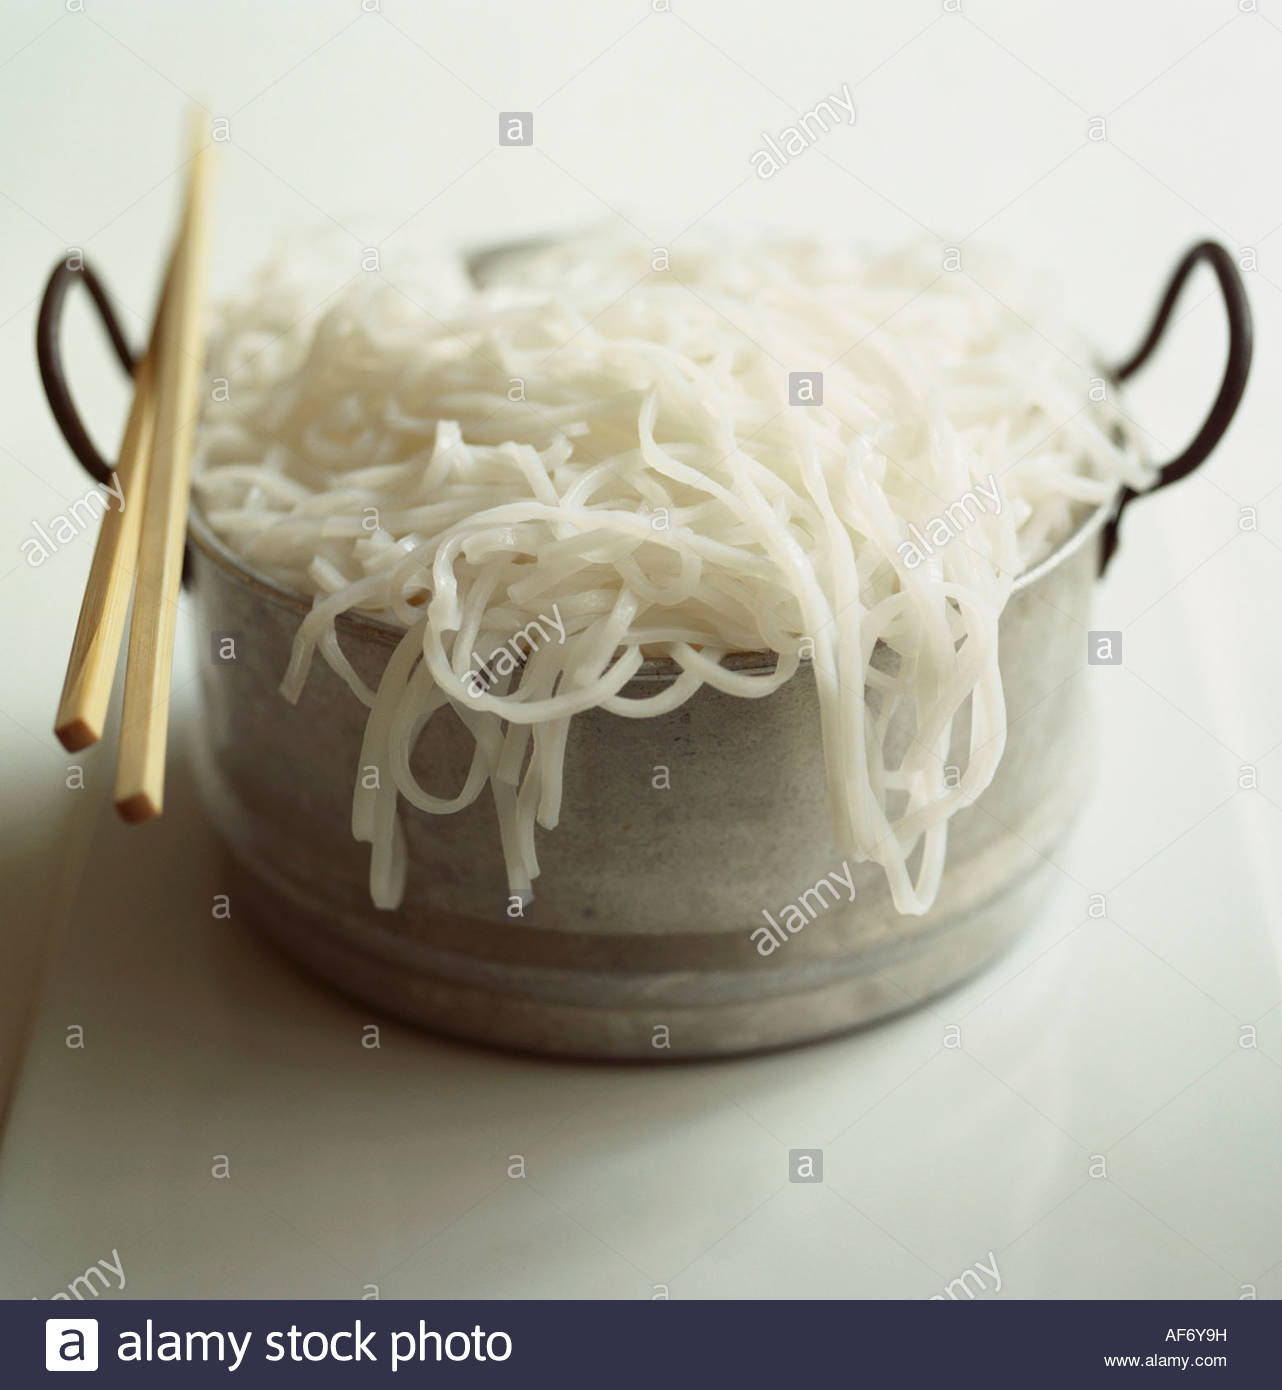 Cooked Rice Noodles In A Pot Cooked Rice Noodles In A Pot Stock Photo,  Royalty